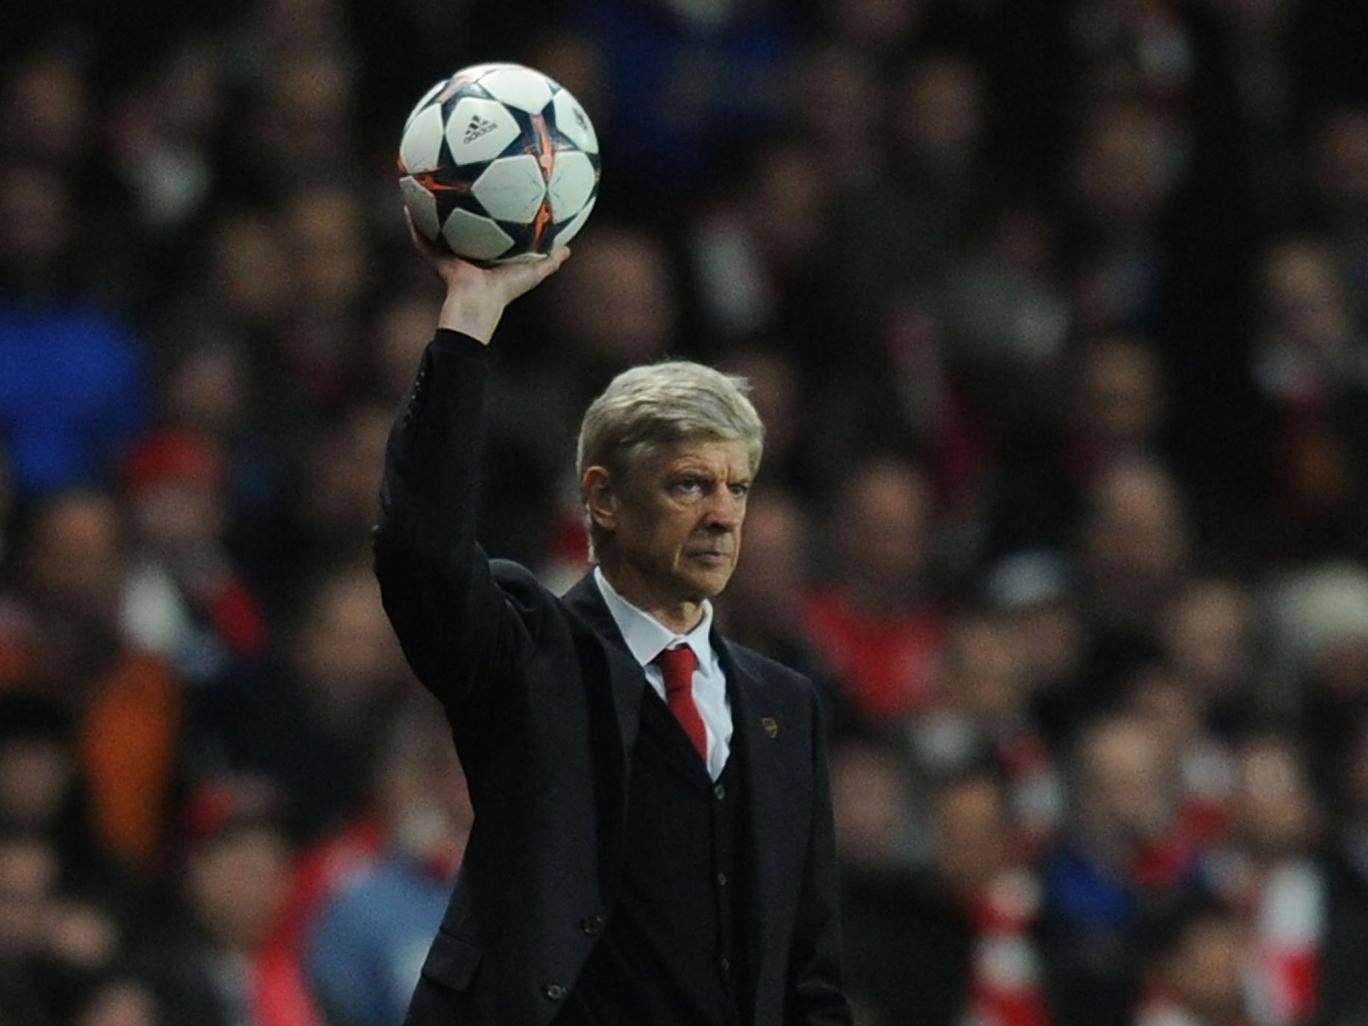 Arsene Wenger throws the ball back into play during Arsenal's 2-0 defeat against Bayern Munich on Wednesday night